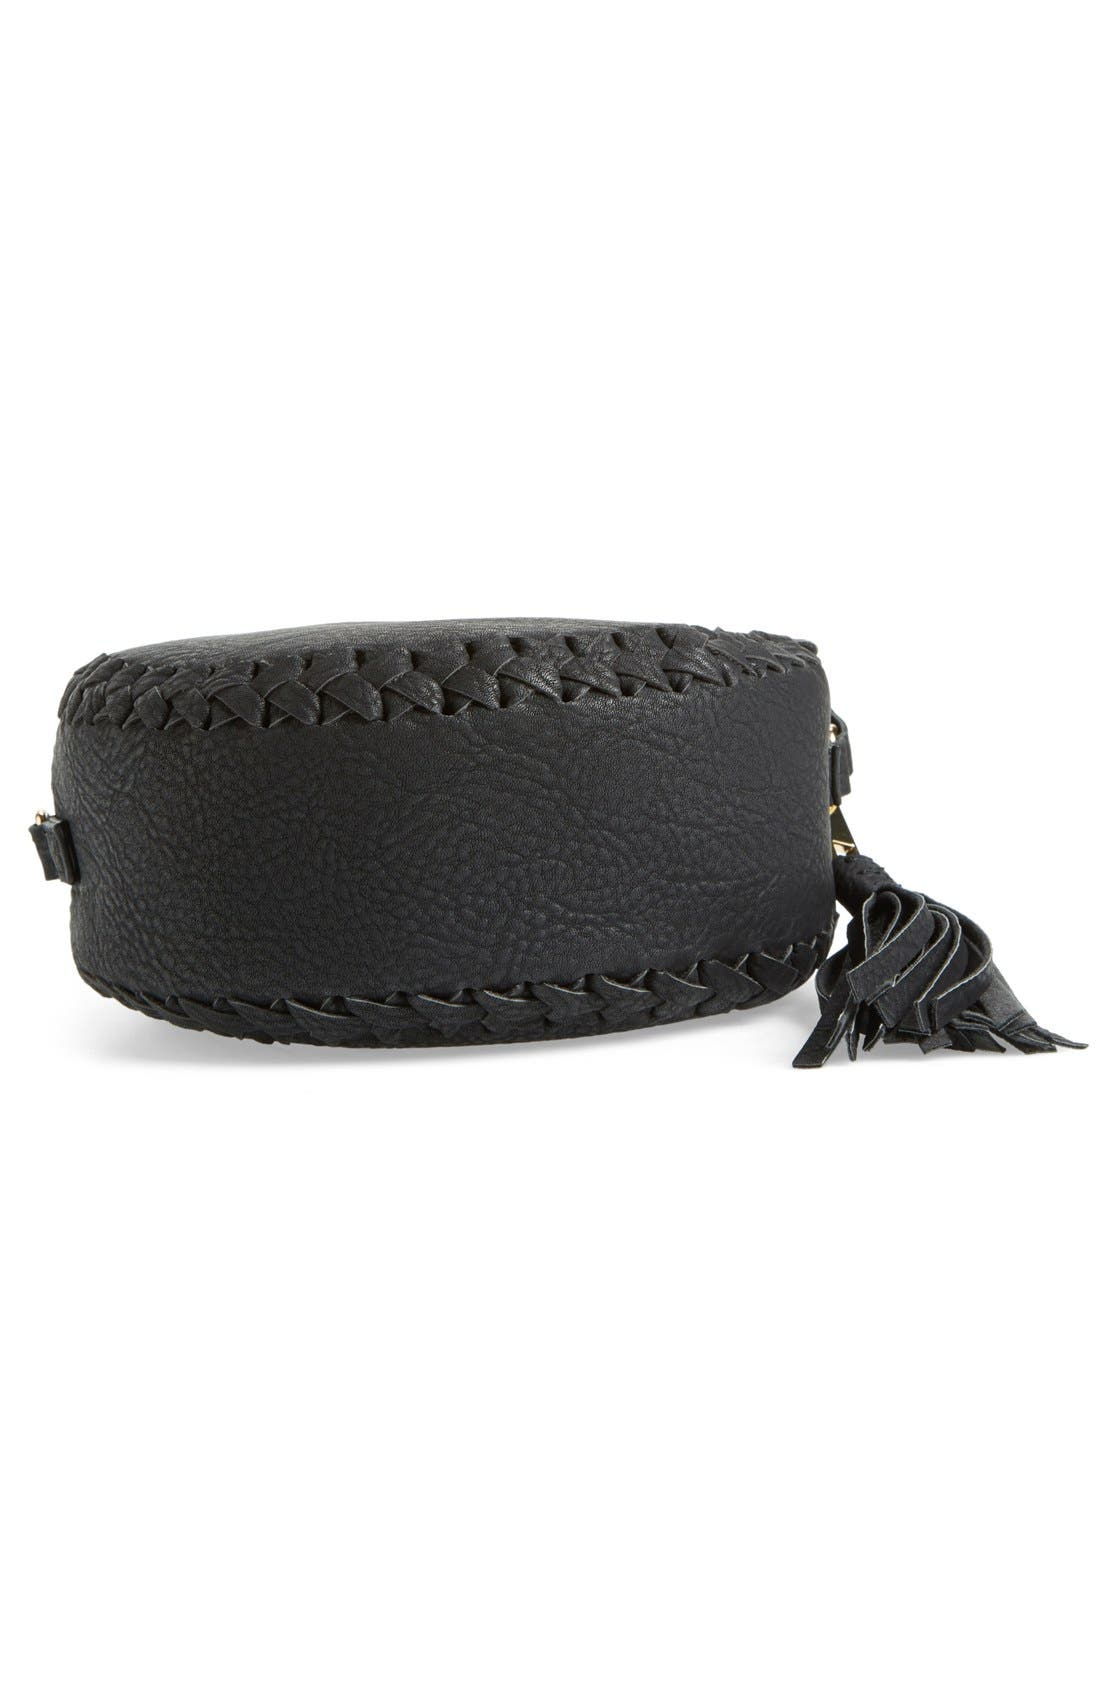 Faux Leather Round Crossbody Bag,                             Alternate thumbnail 2, color,                             001